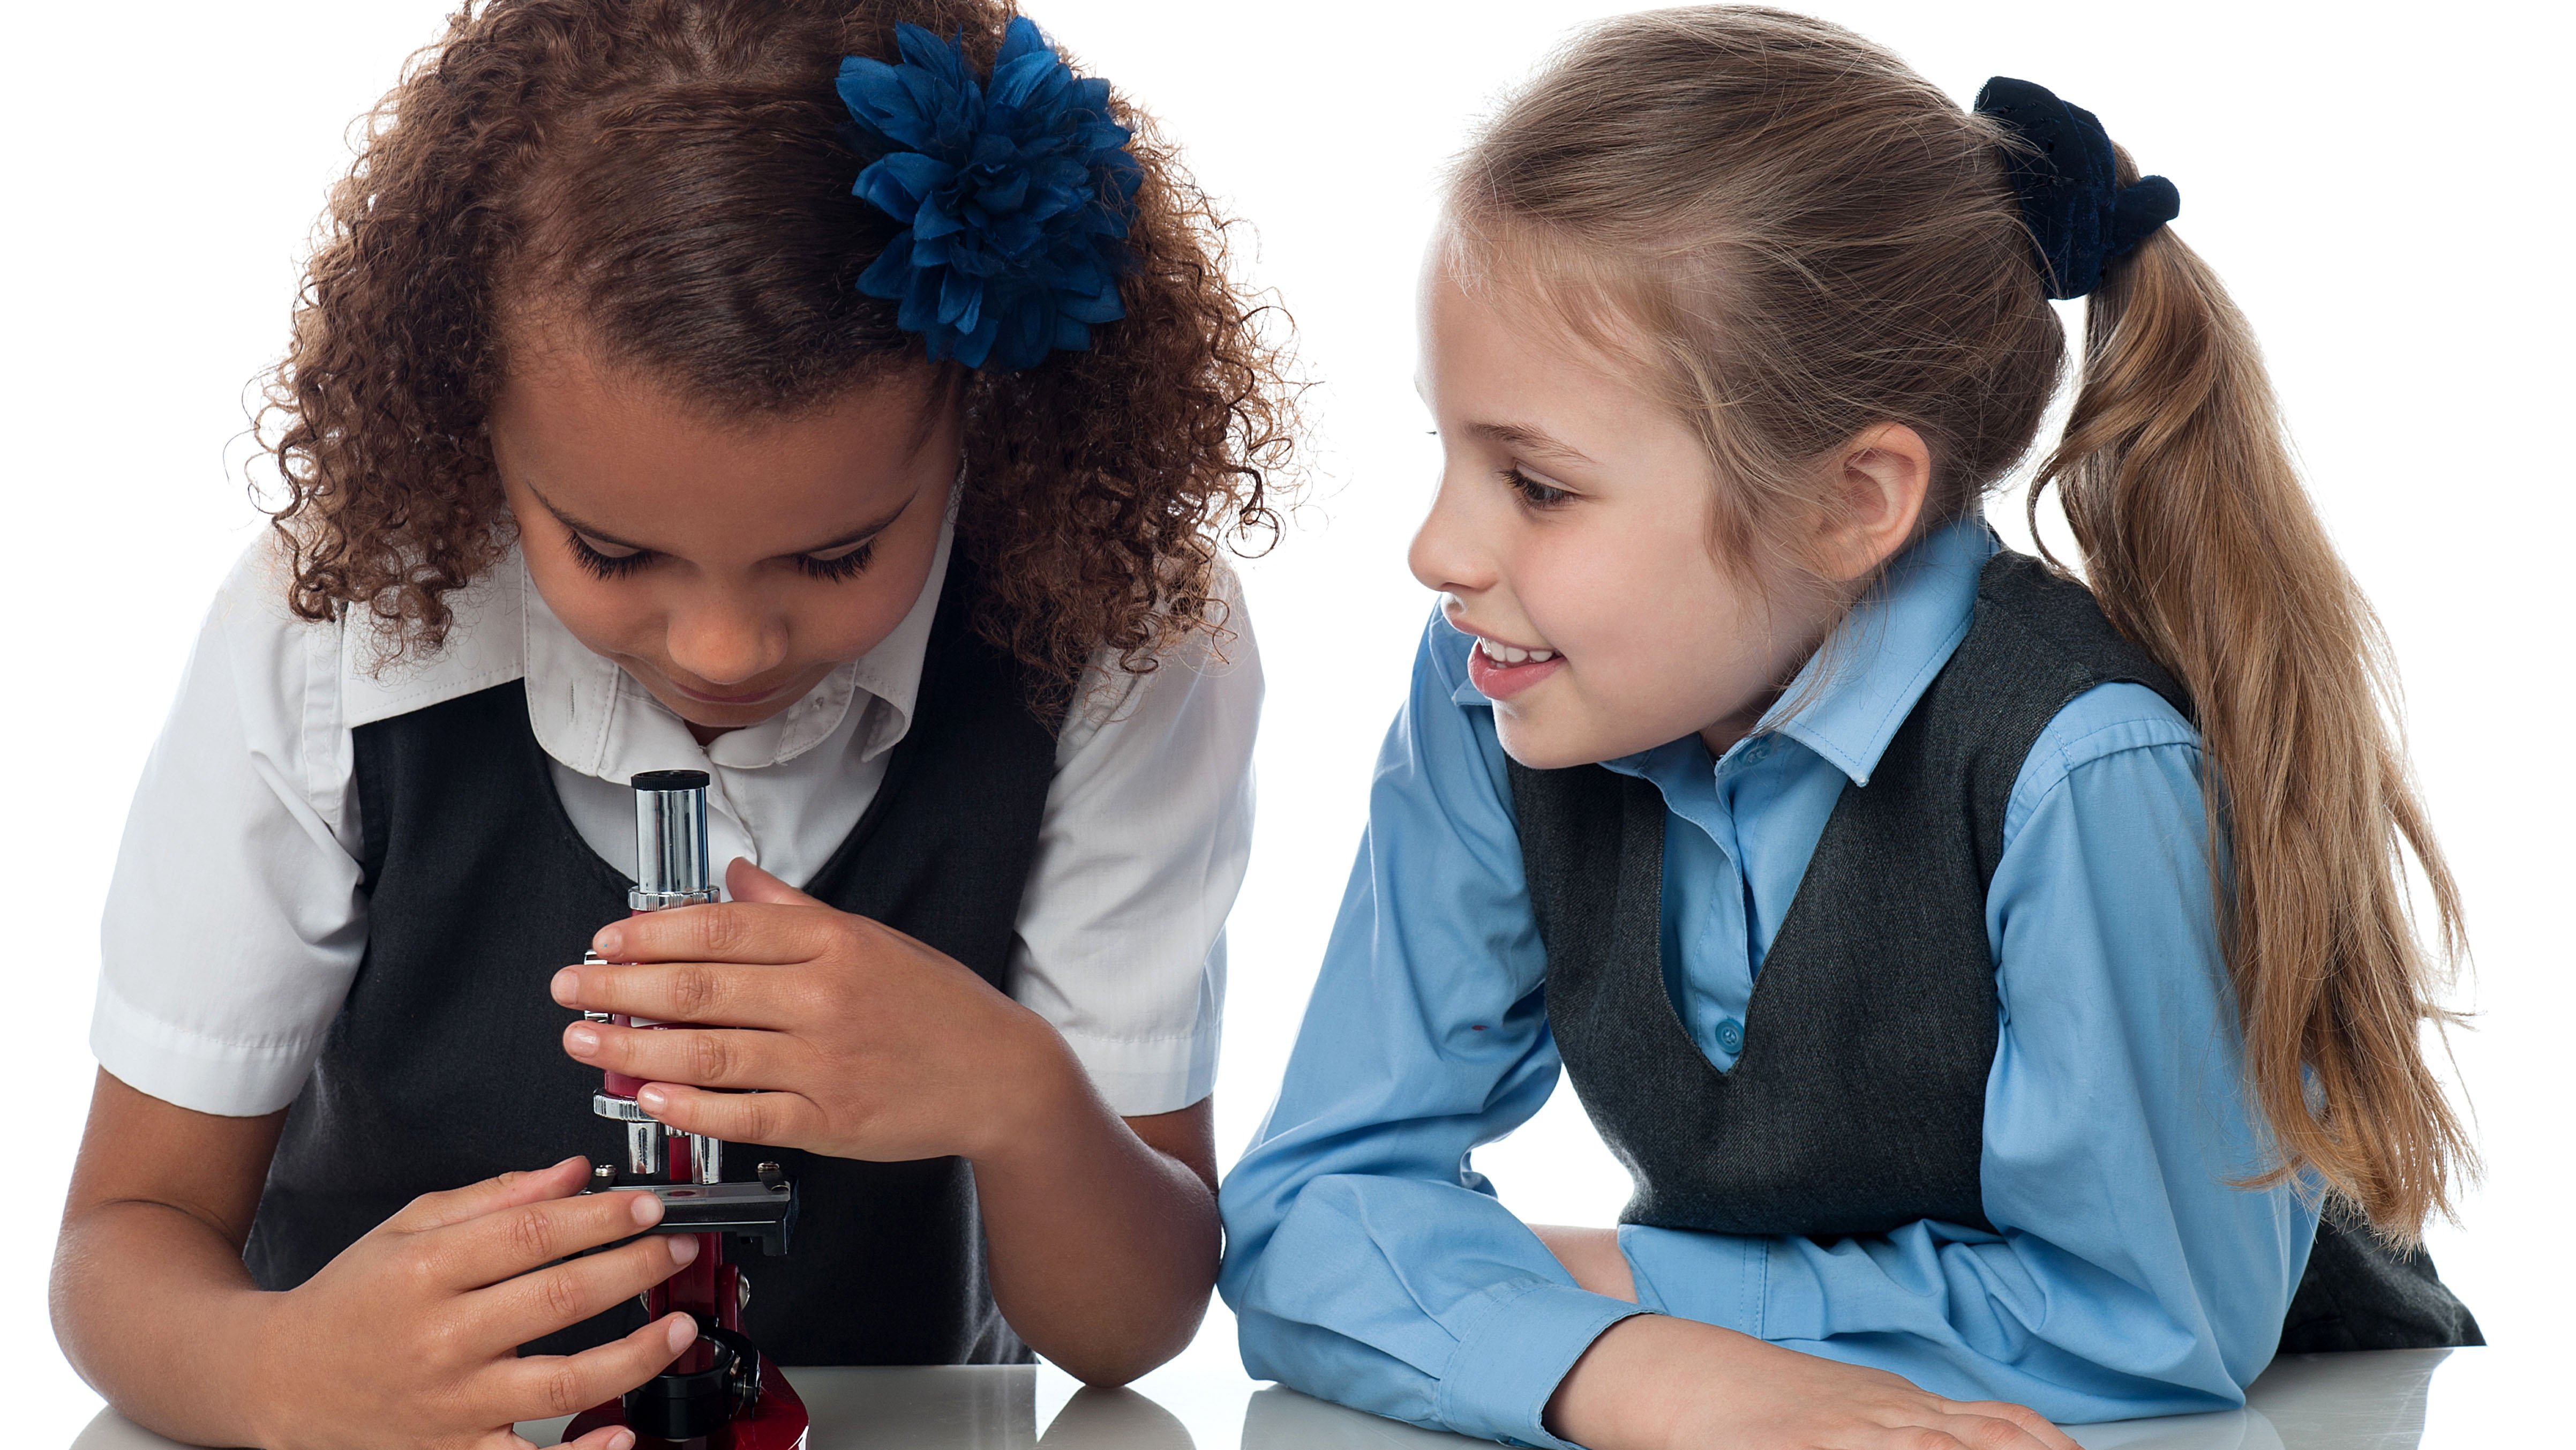 Two school girls, one looking in a microscope while the other watches her smiling